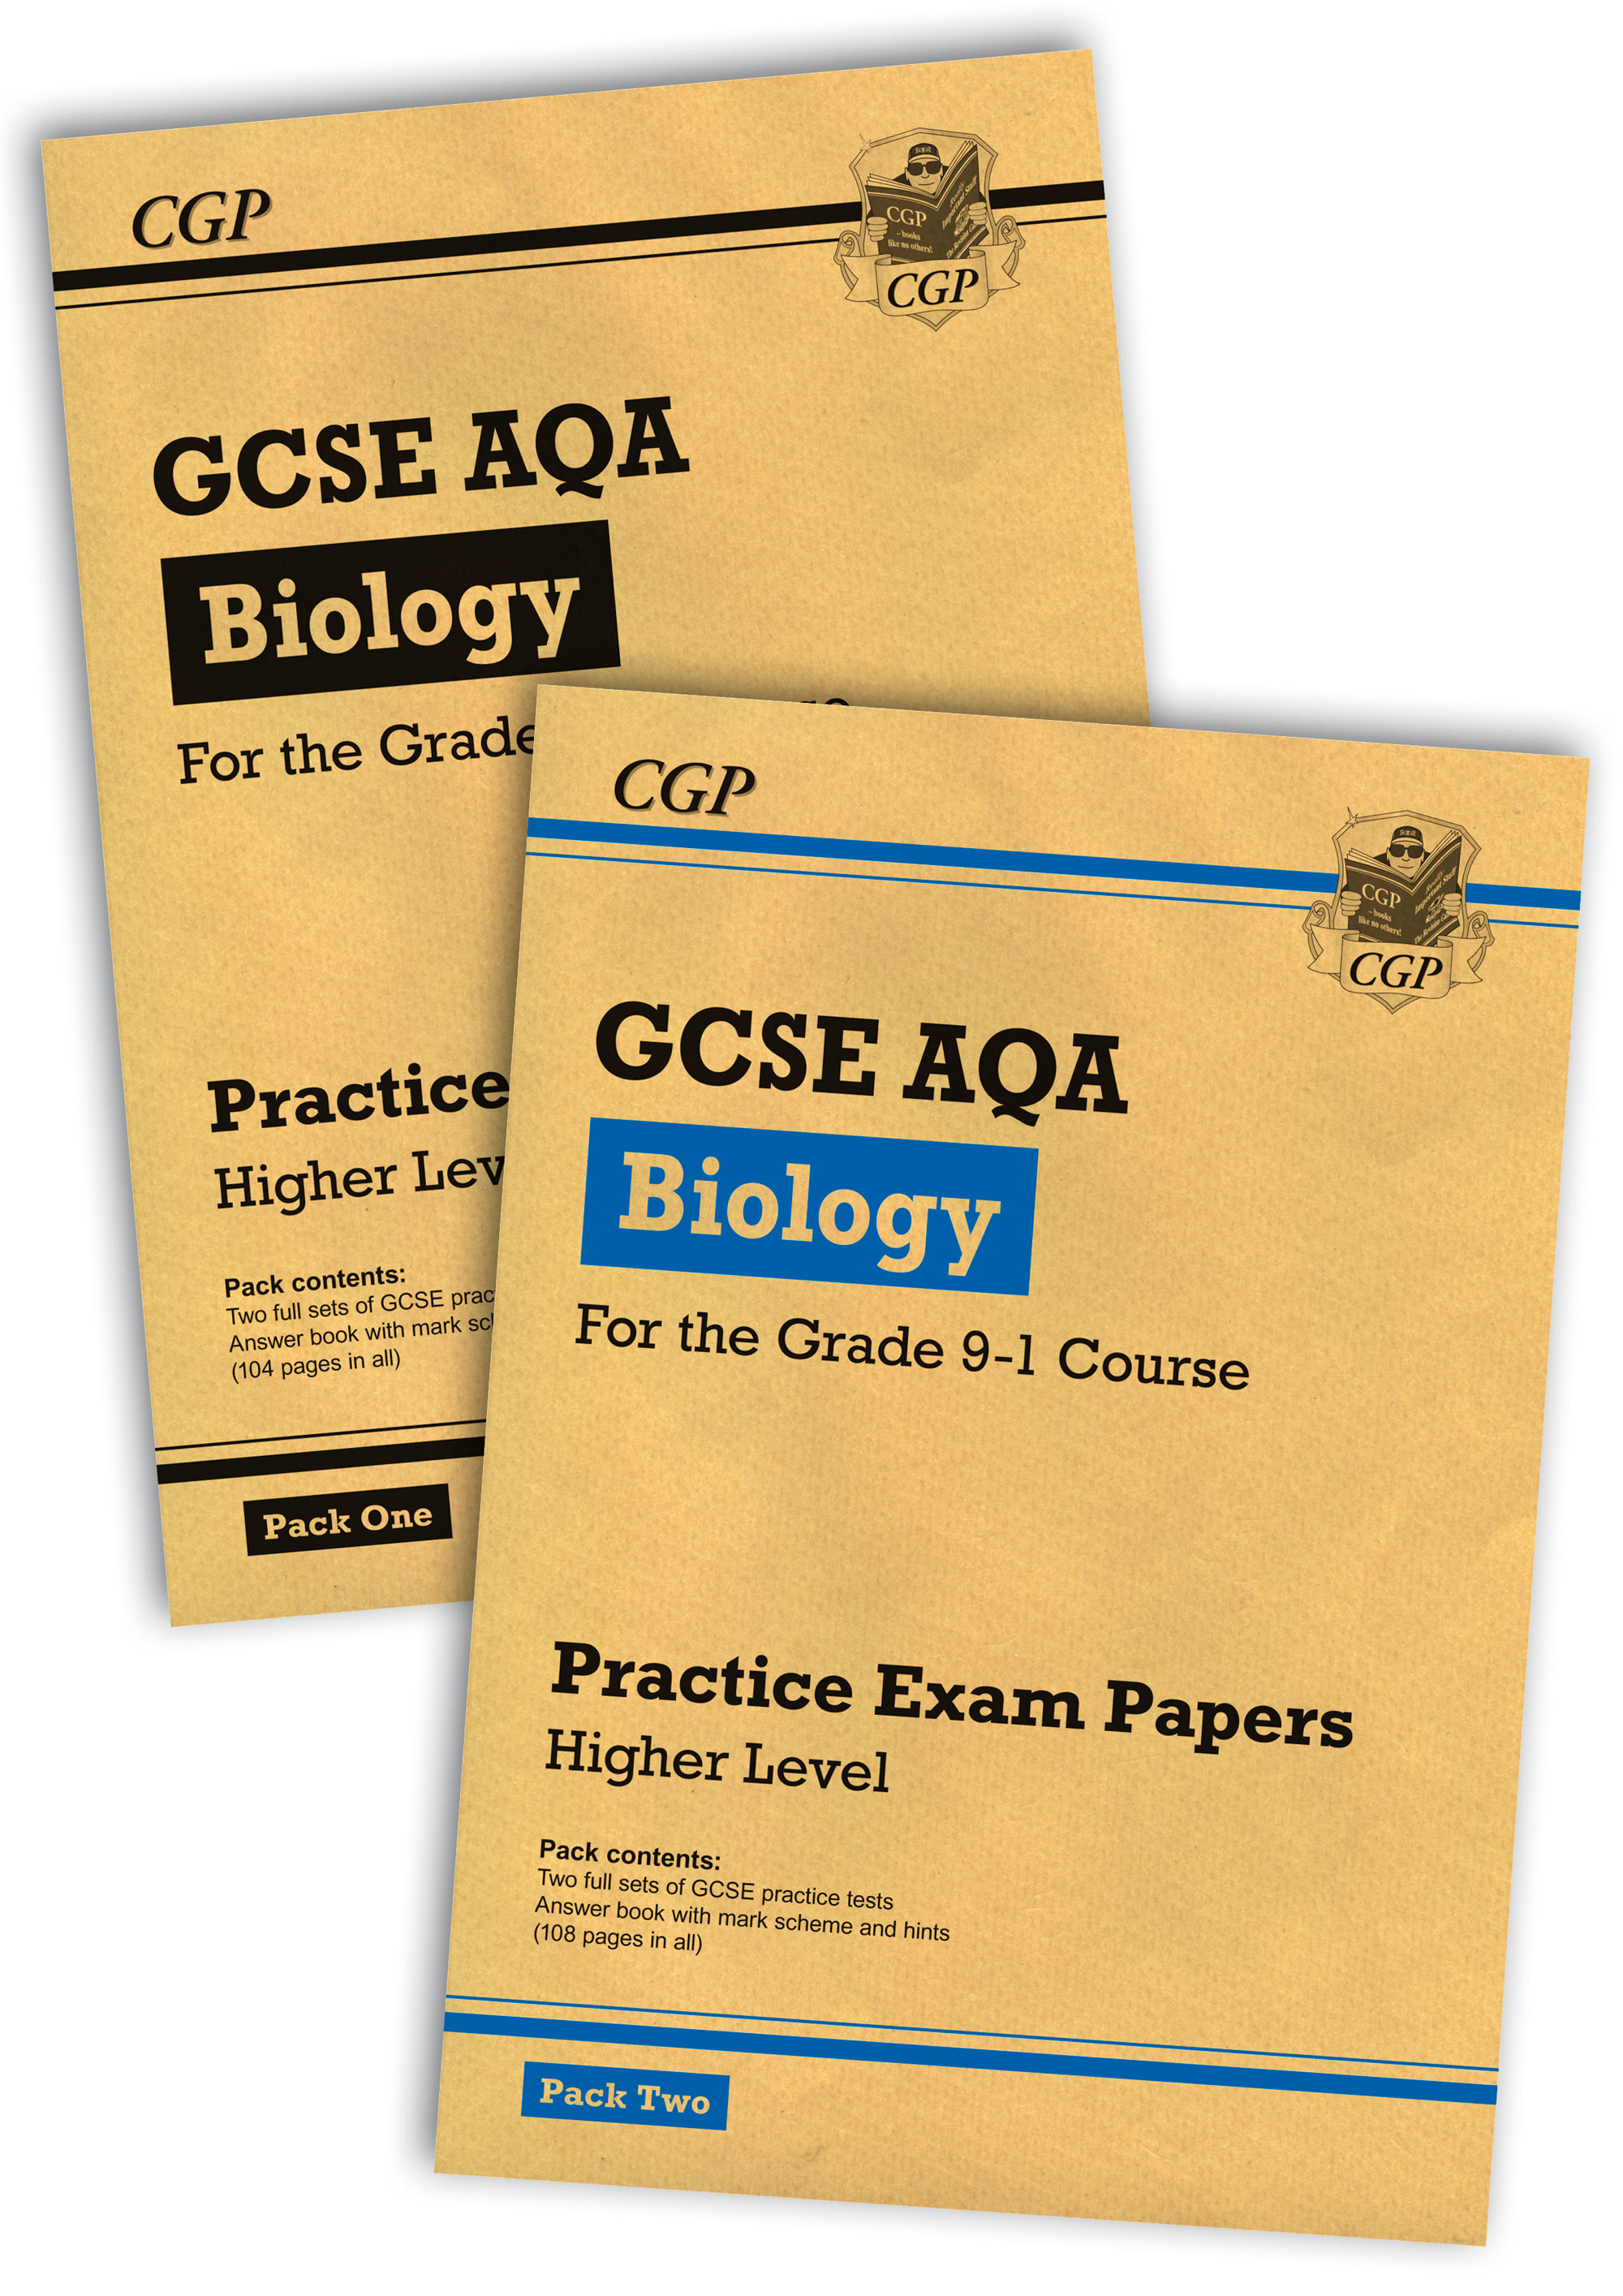 BAHBP41 - New Grade 9-1 GCSE Biology AQA Practice Papers: Higher Pack 1 & 2 Bundle